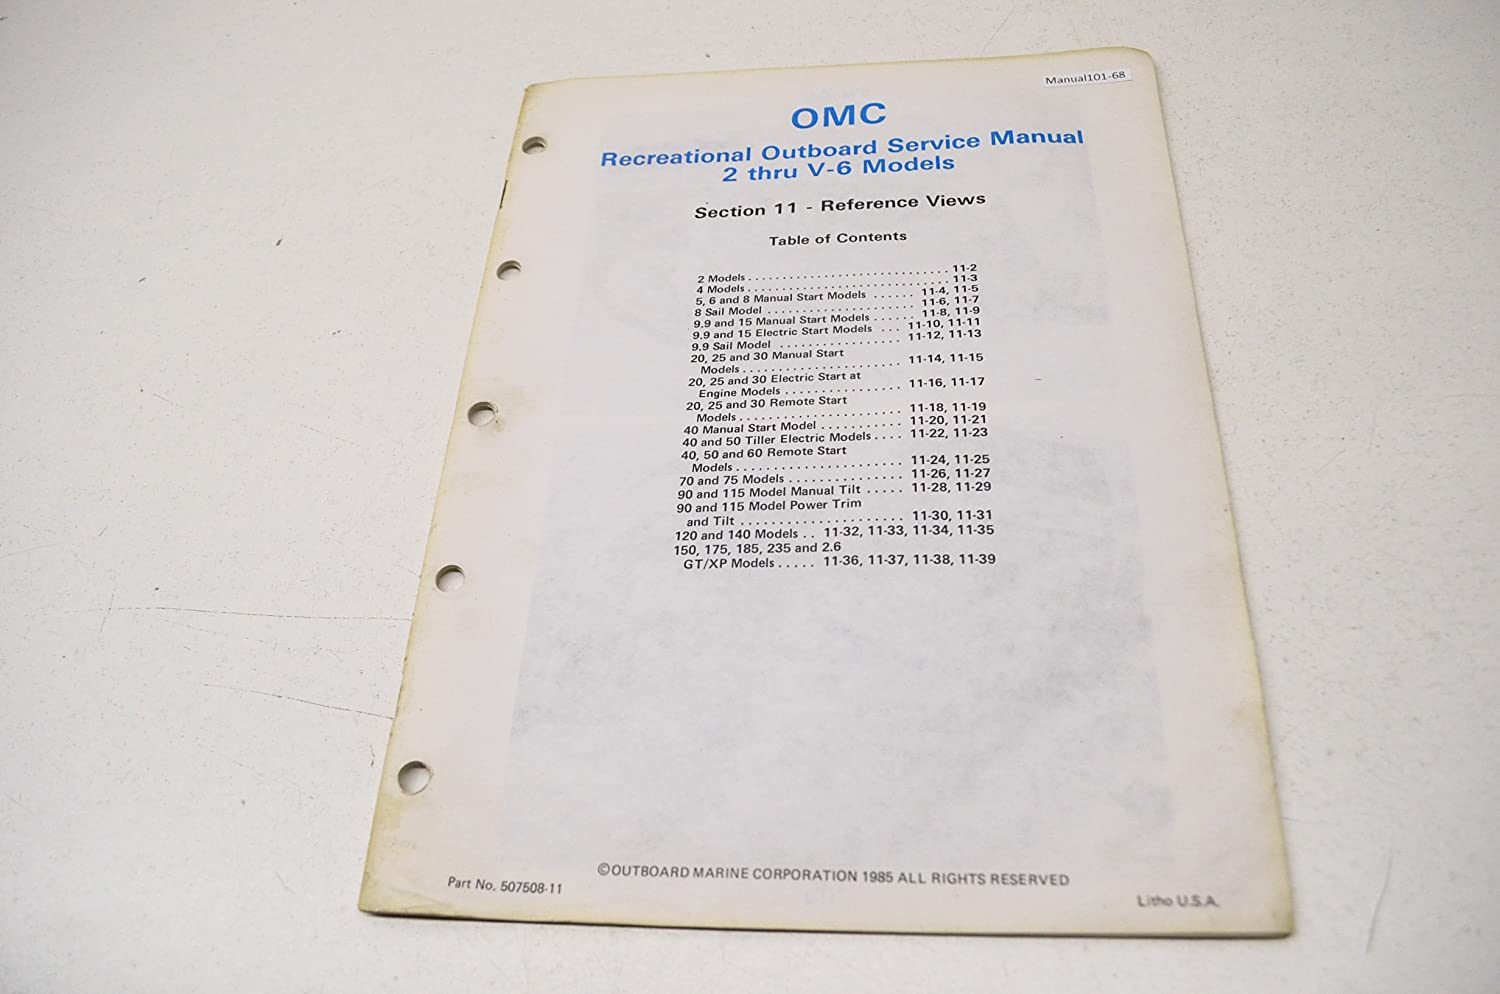 Amazon.com: OMC 507508-11 Rec Outboard Service Manual 2 to V-6 Sec 11  Reference Views QTY 1: Automotive